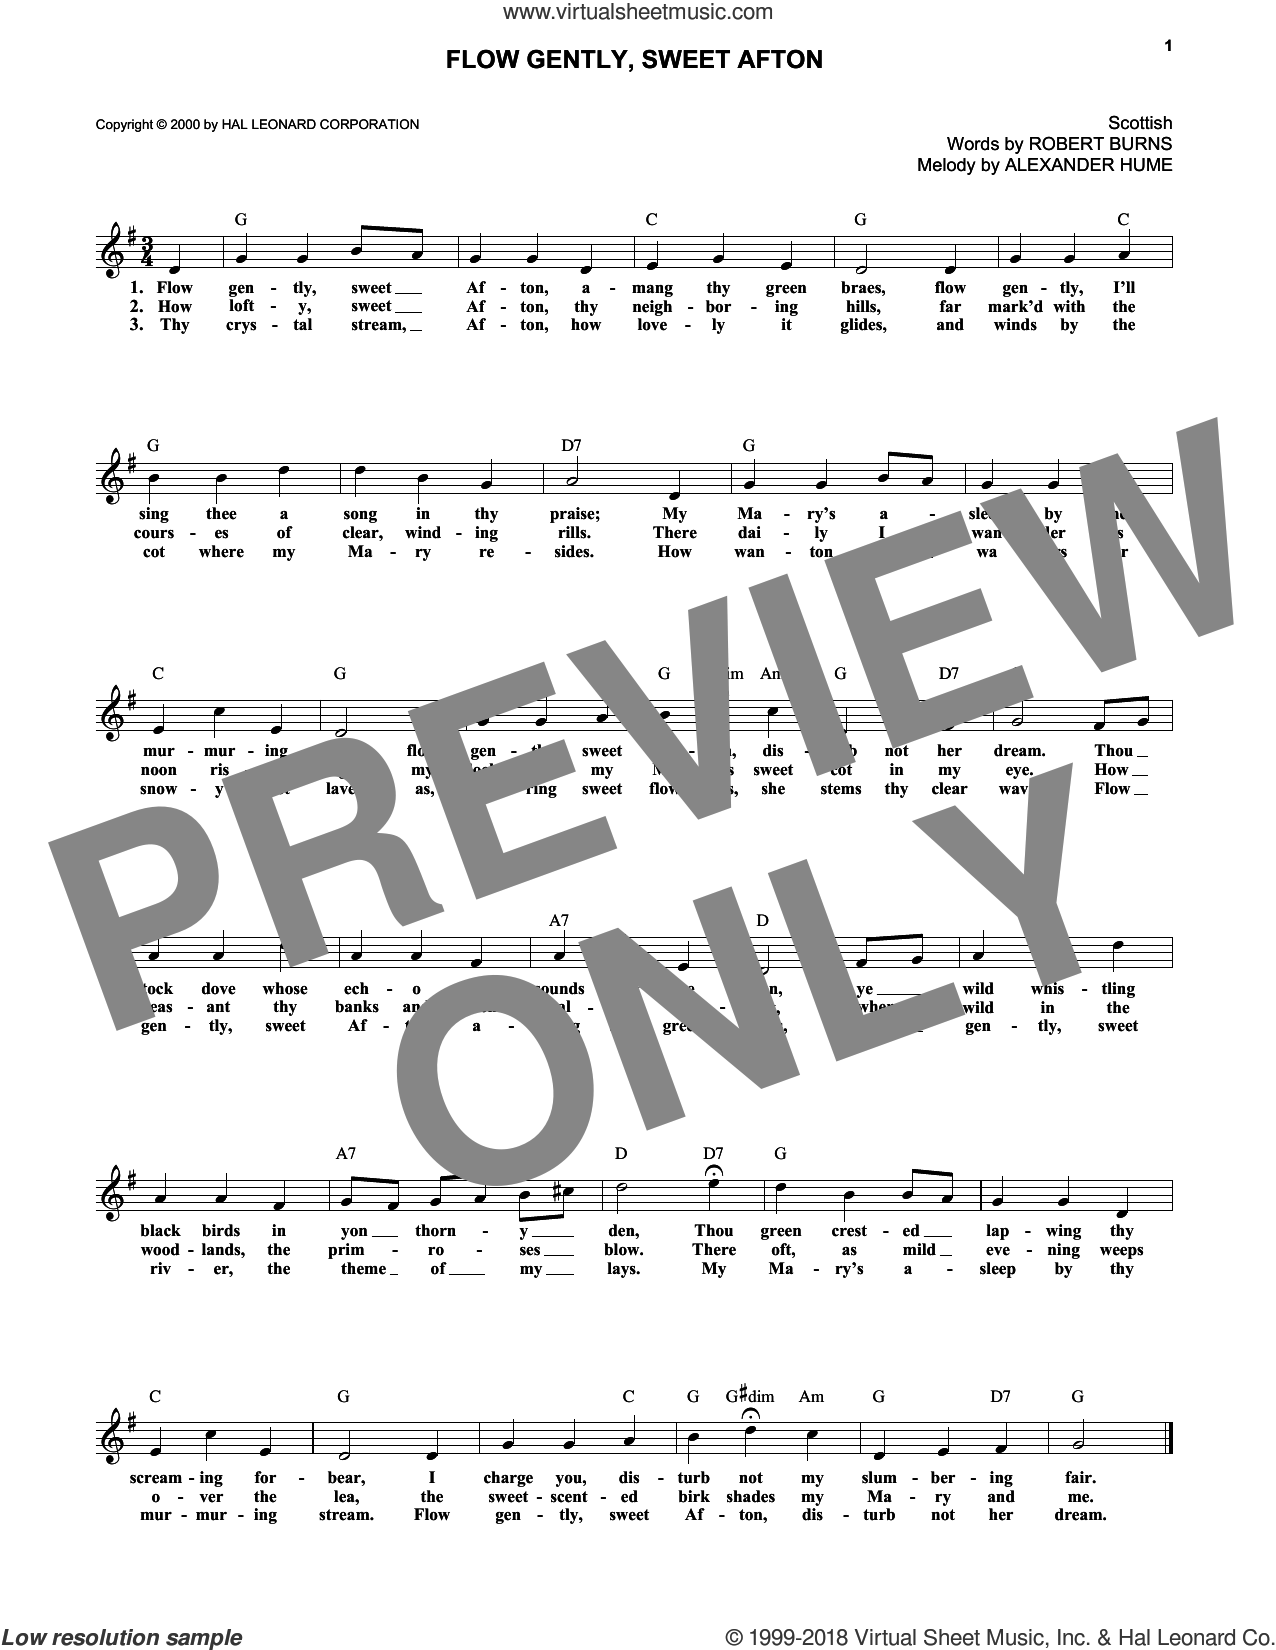 Flow Gently, Sweet Afton sheet music for voice and other instruments (fake book) by Alexander Hume and Robert Burns, intermediate skill level